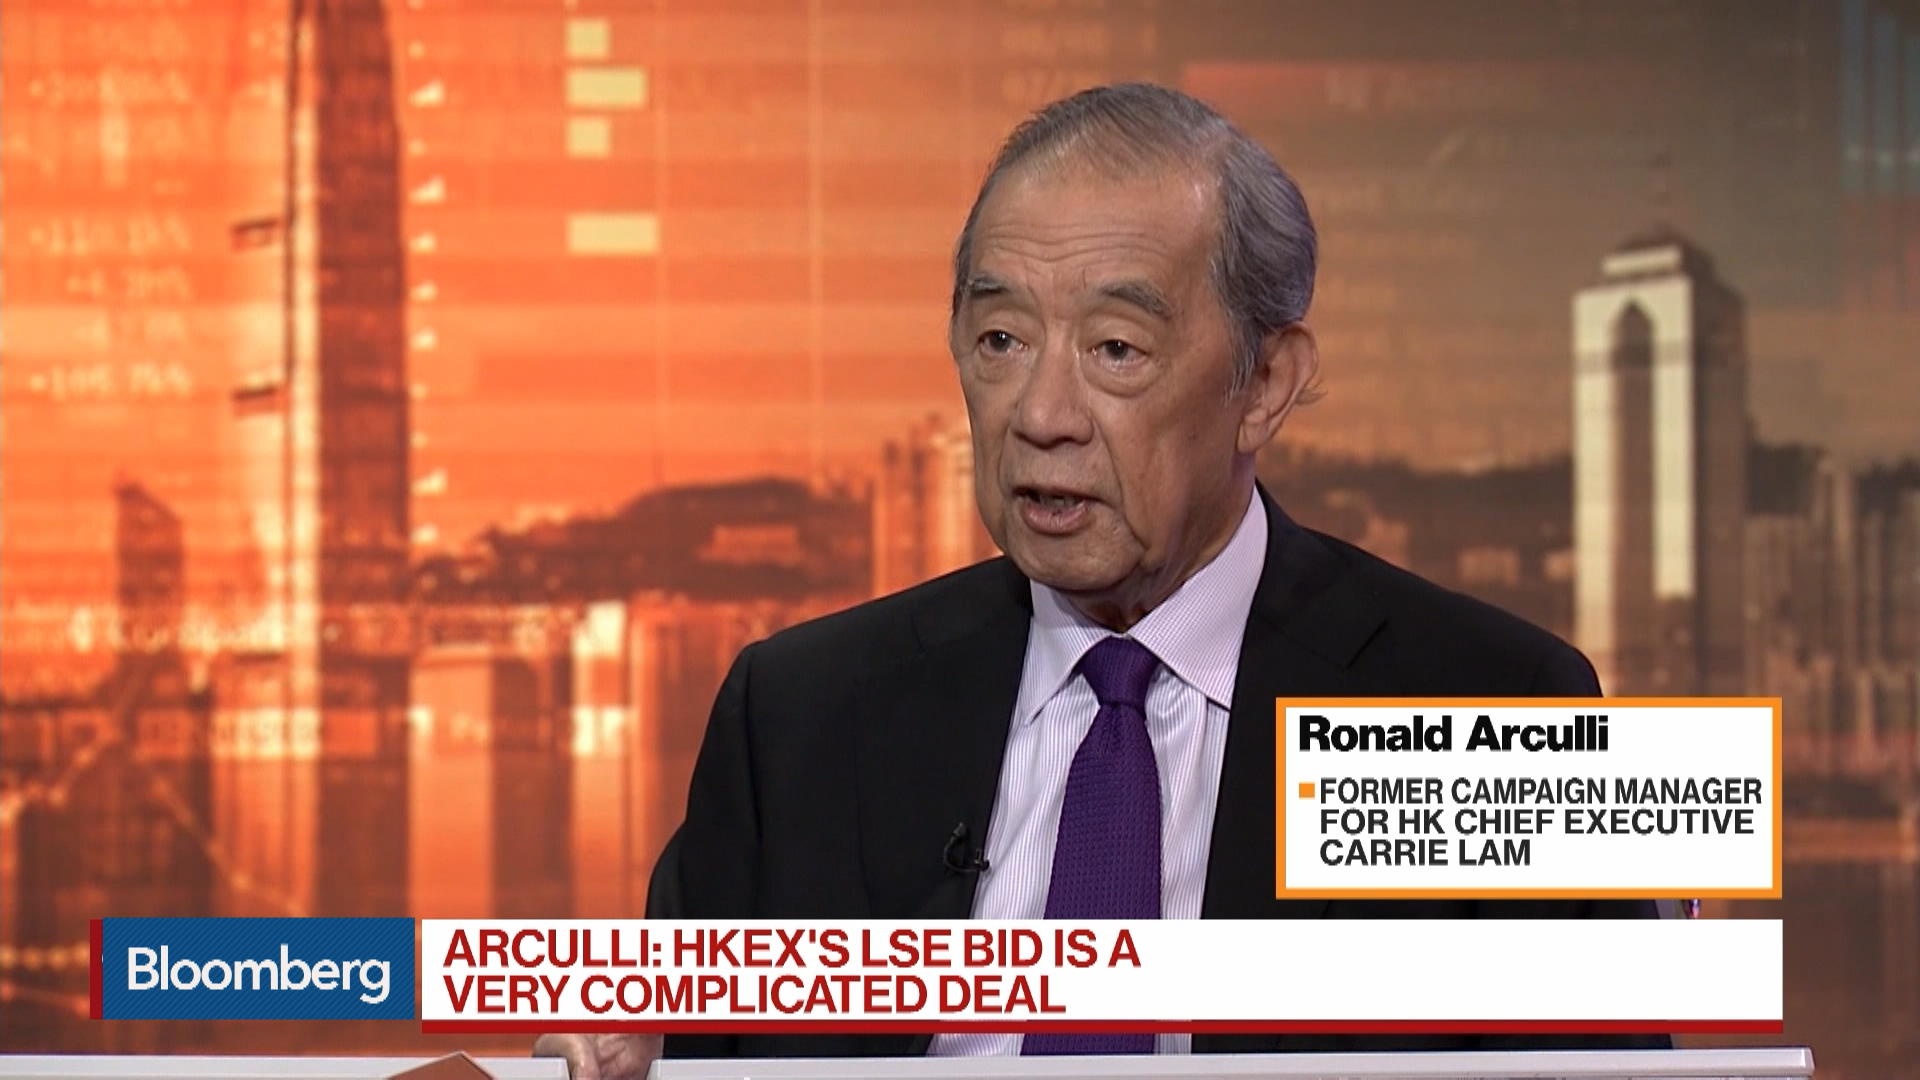 HKEX's LSE Bid Is a Very Complicated Deal, Says King & Wood Mallesons's Arculli